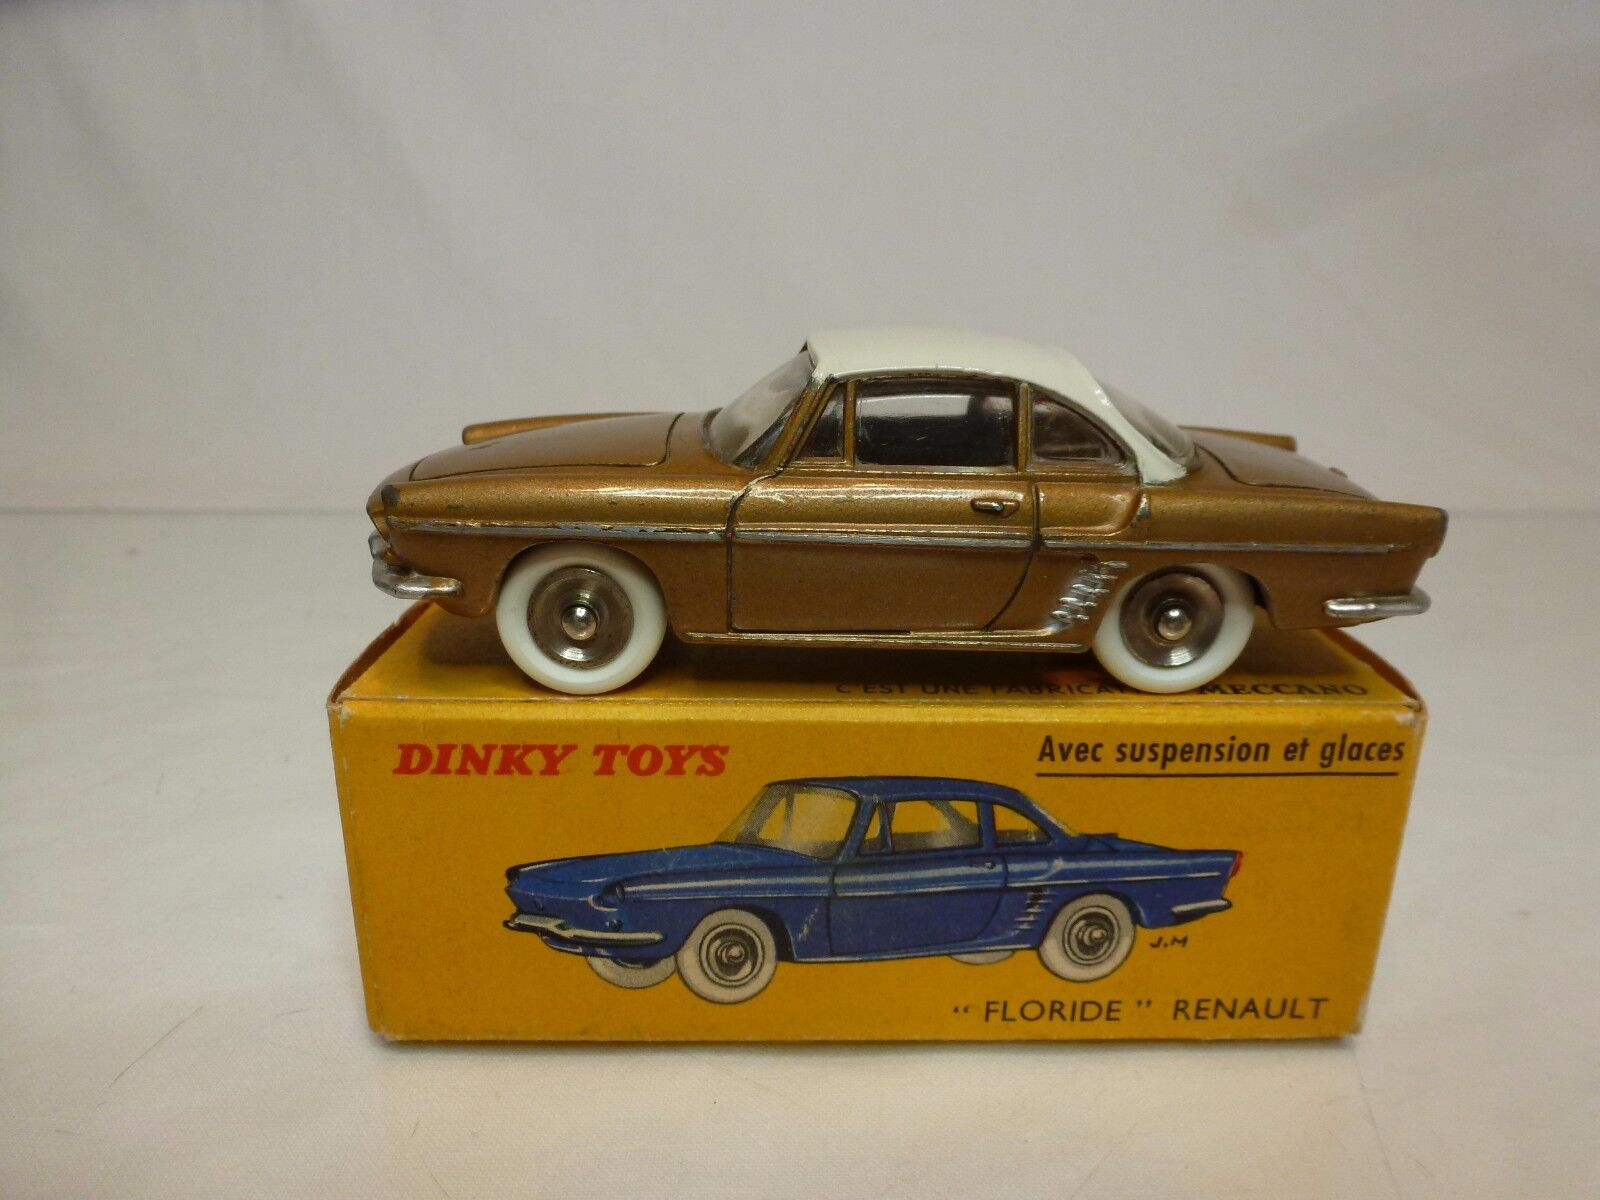 DINKY TOYS 543 RENAULT FLORIDE - BRONZE 1 43 - GOOD CONDITION IN BOX